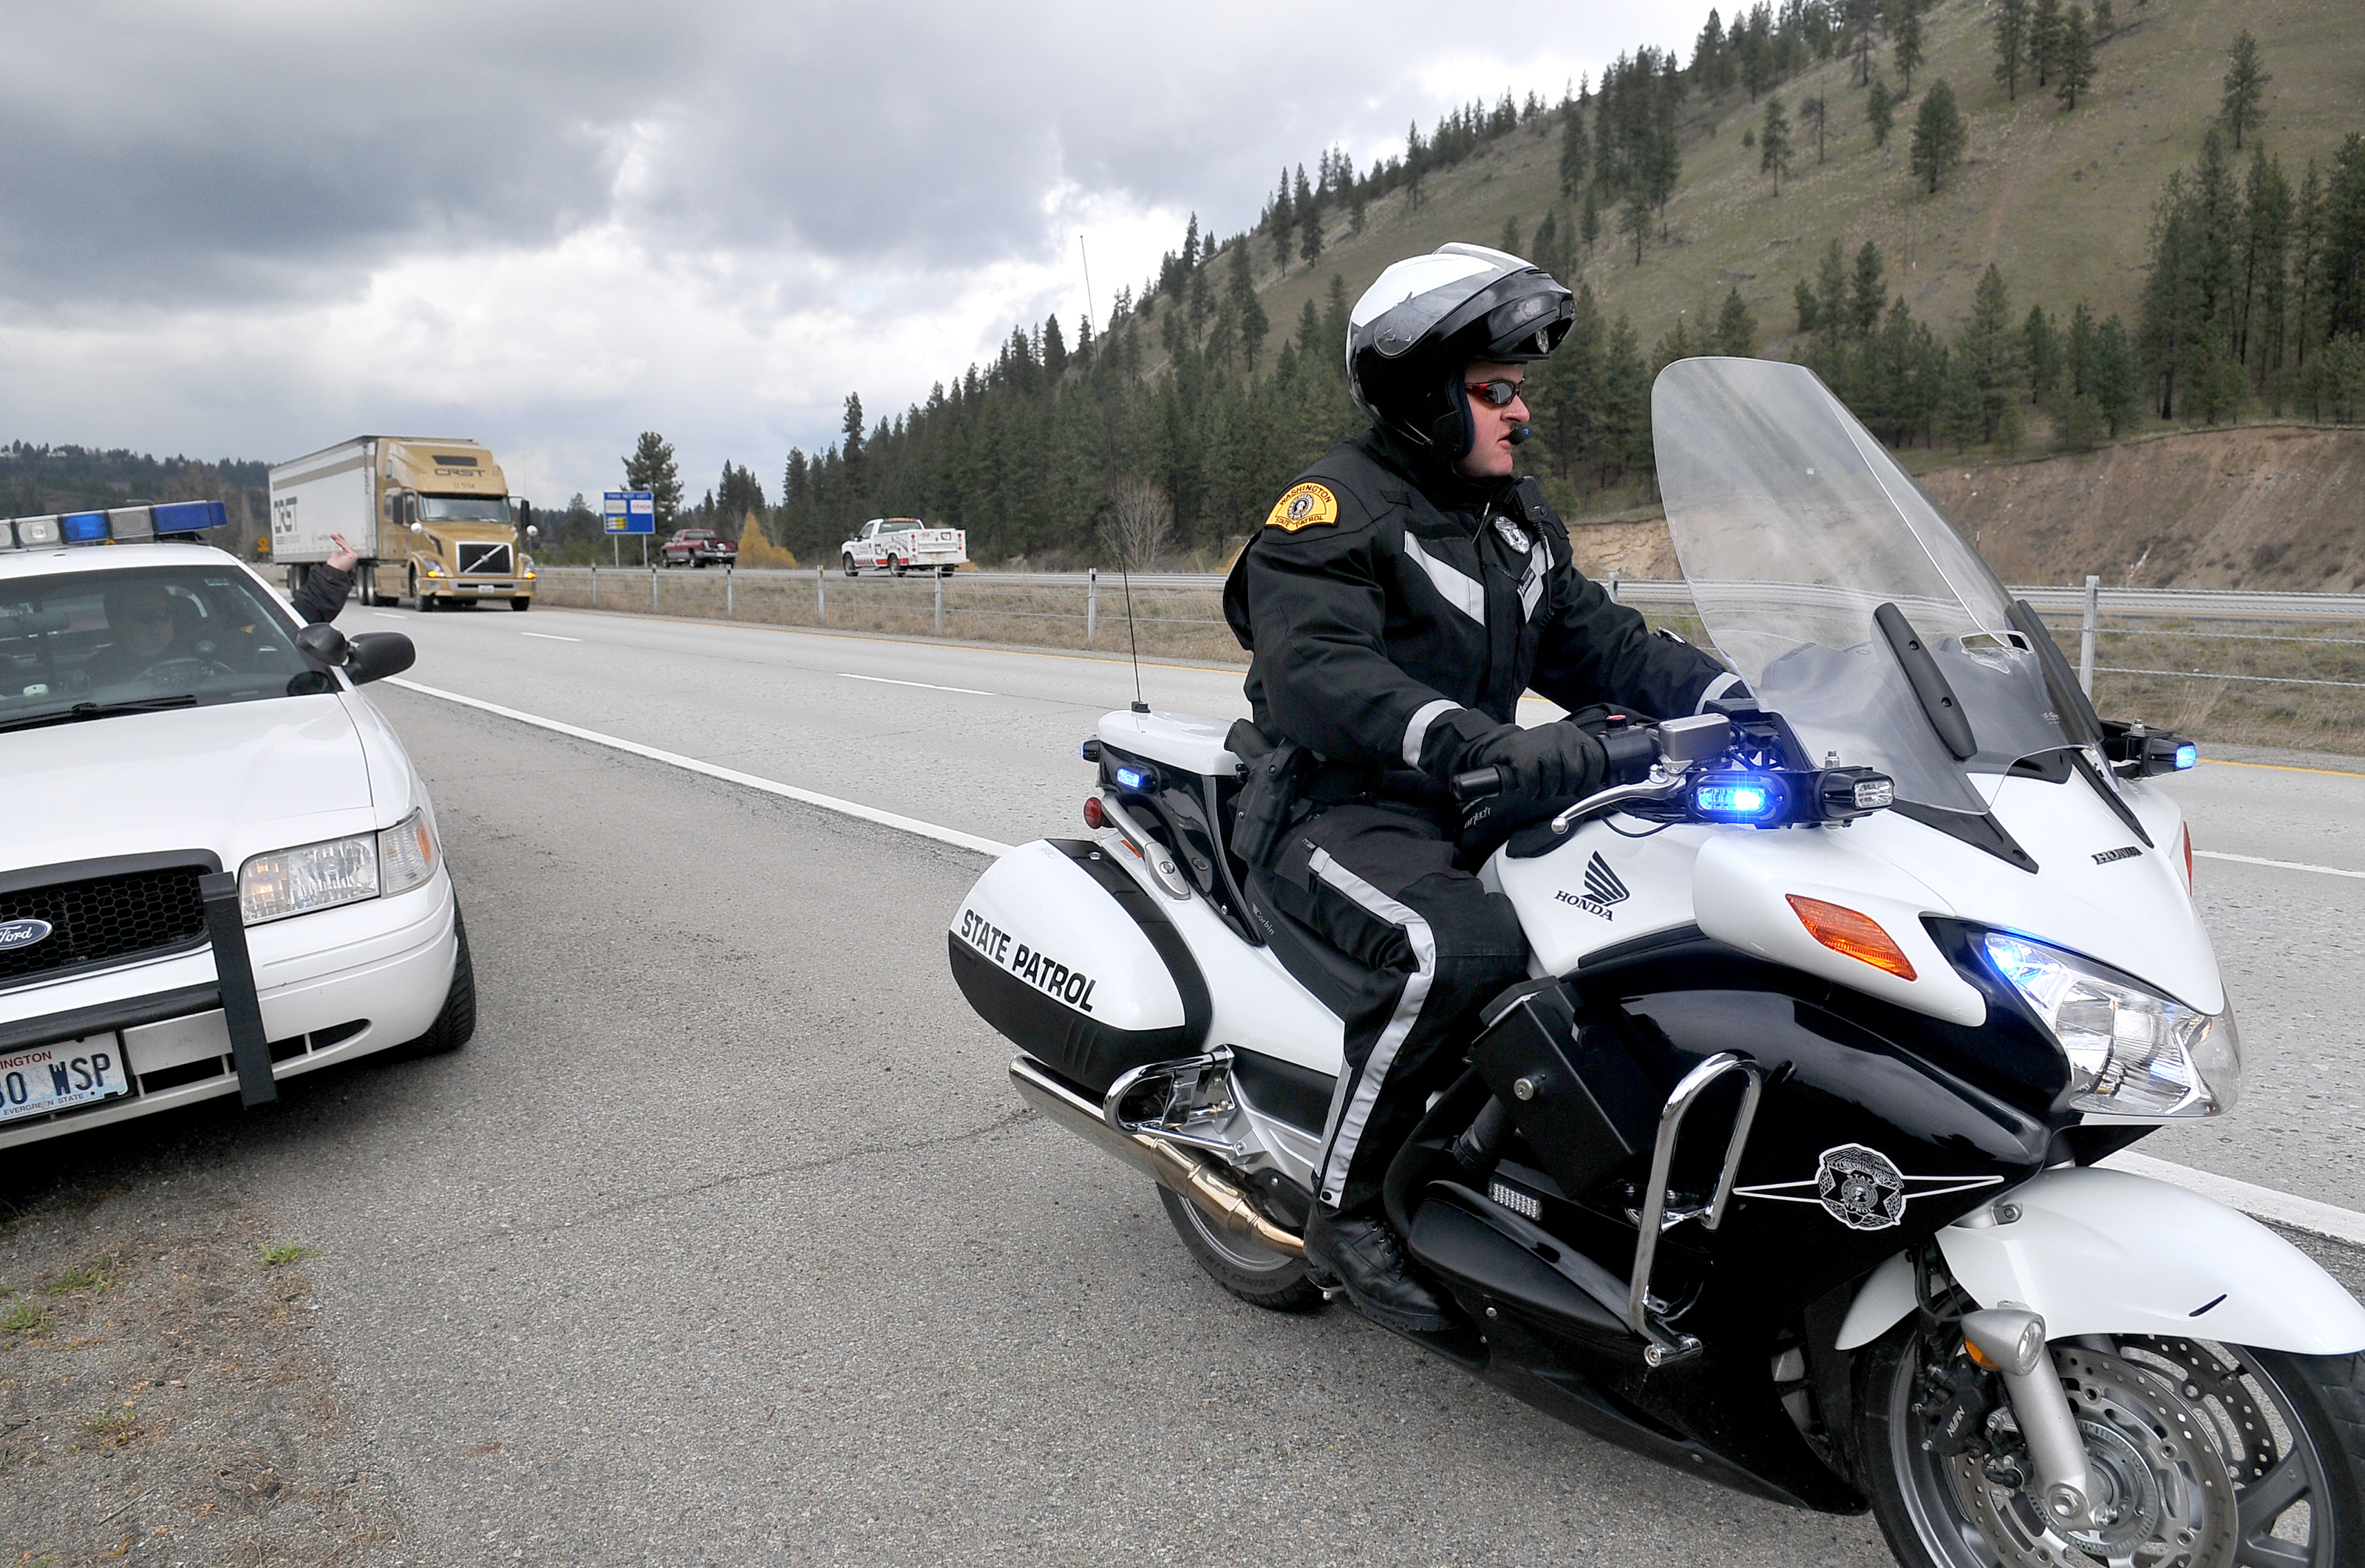 Washington State Trooper Jeff Sevigney Waits On A New Honda Motorcycle For Truck To Pass